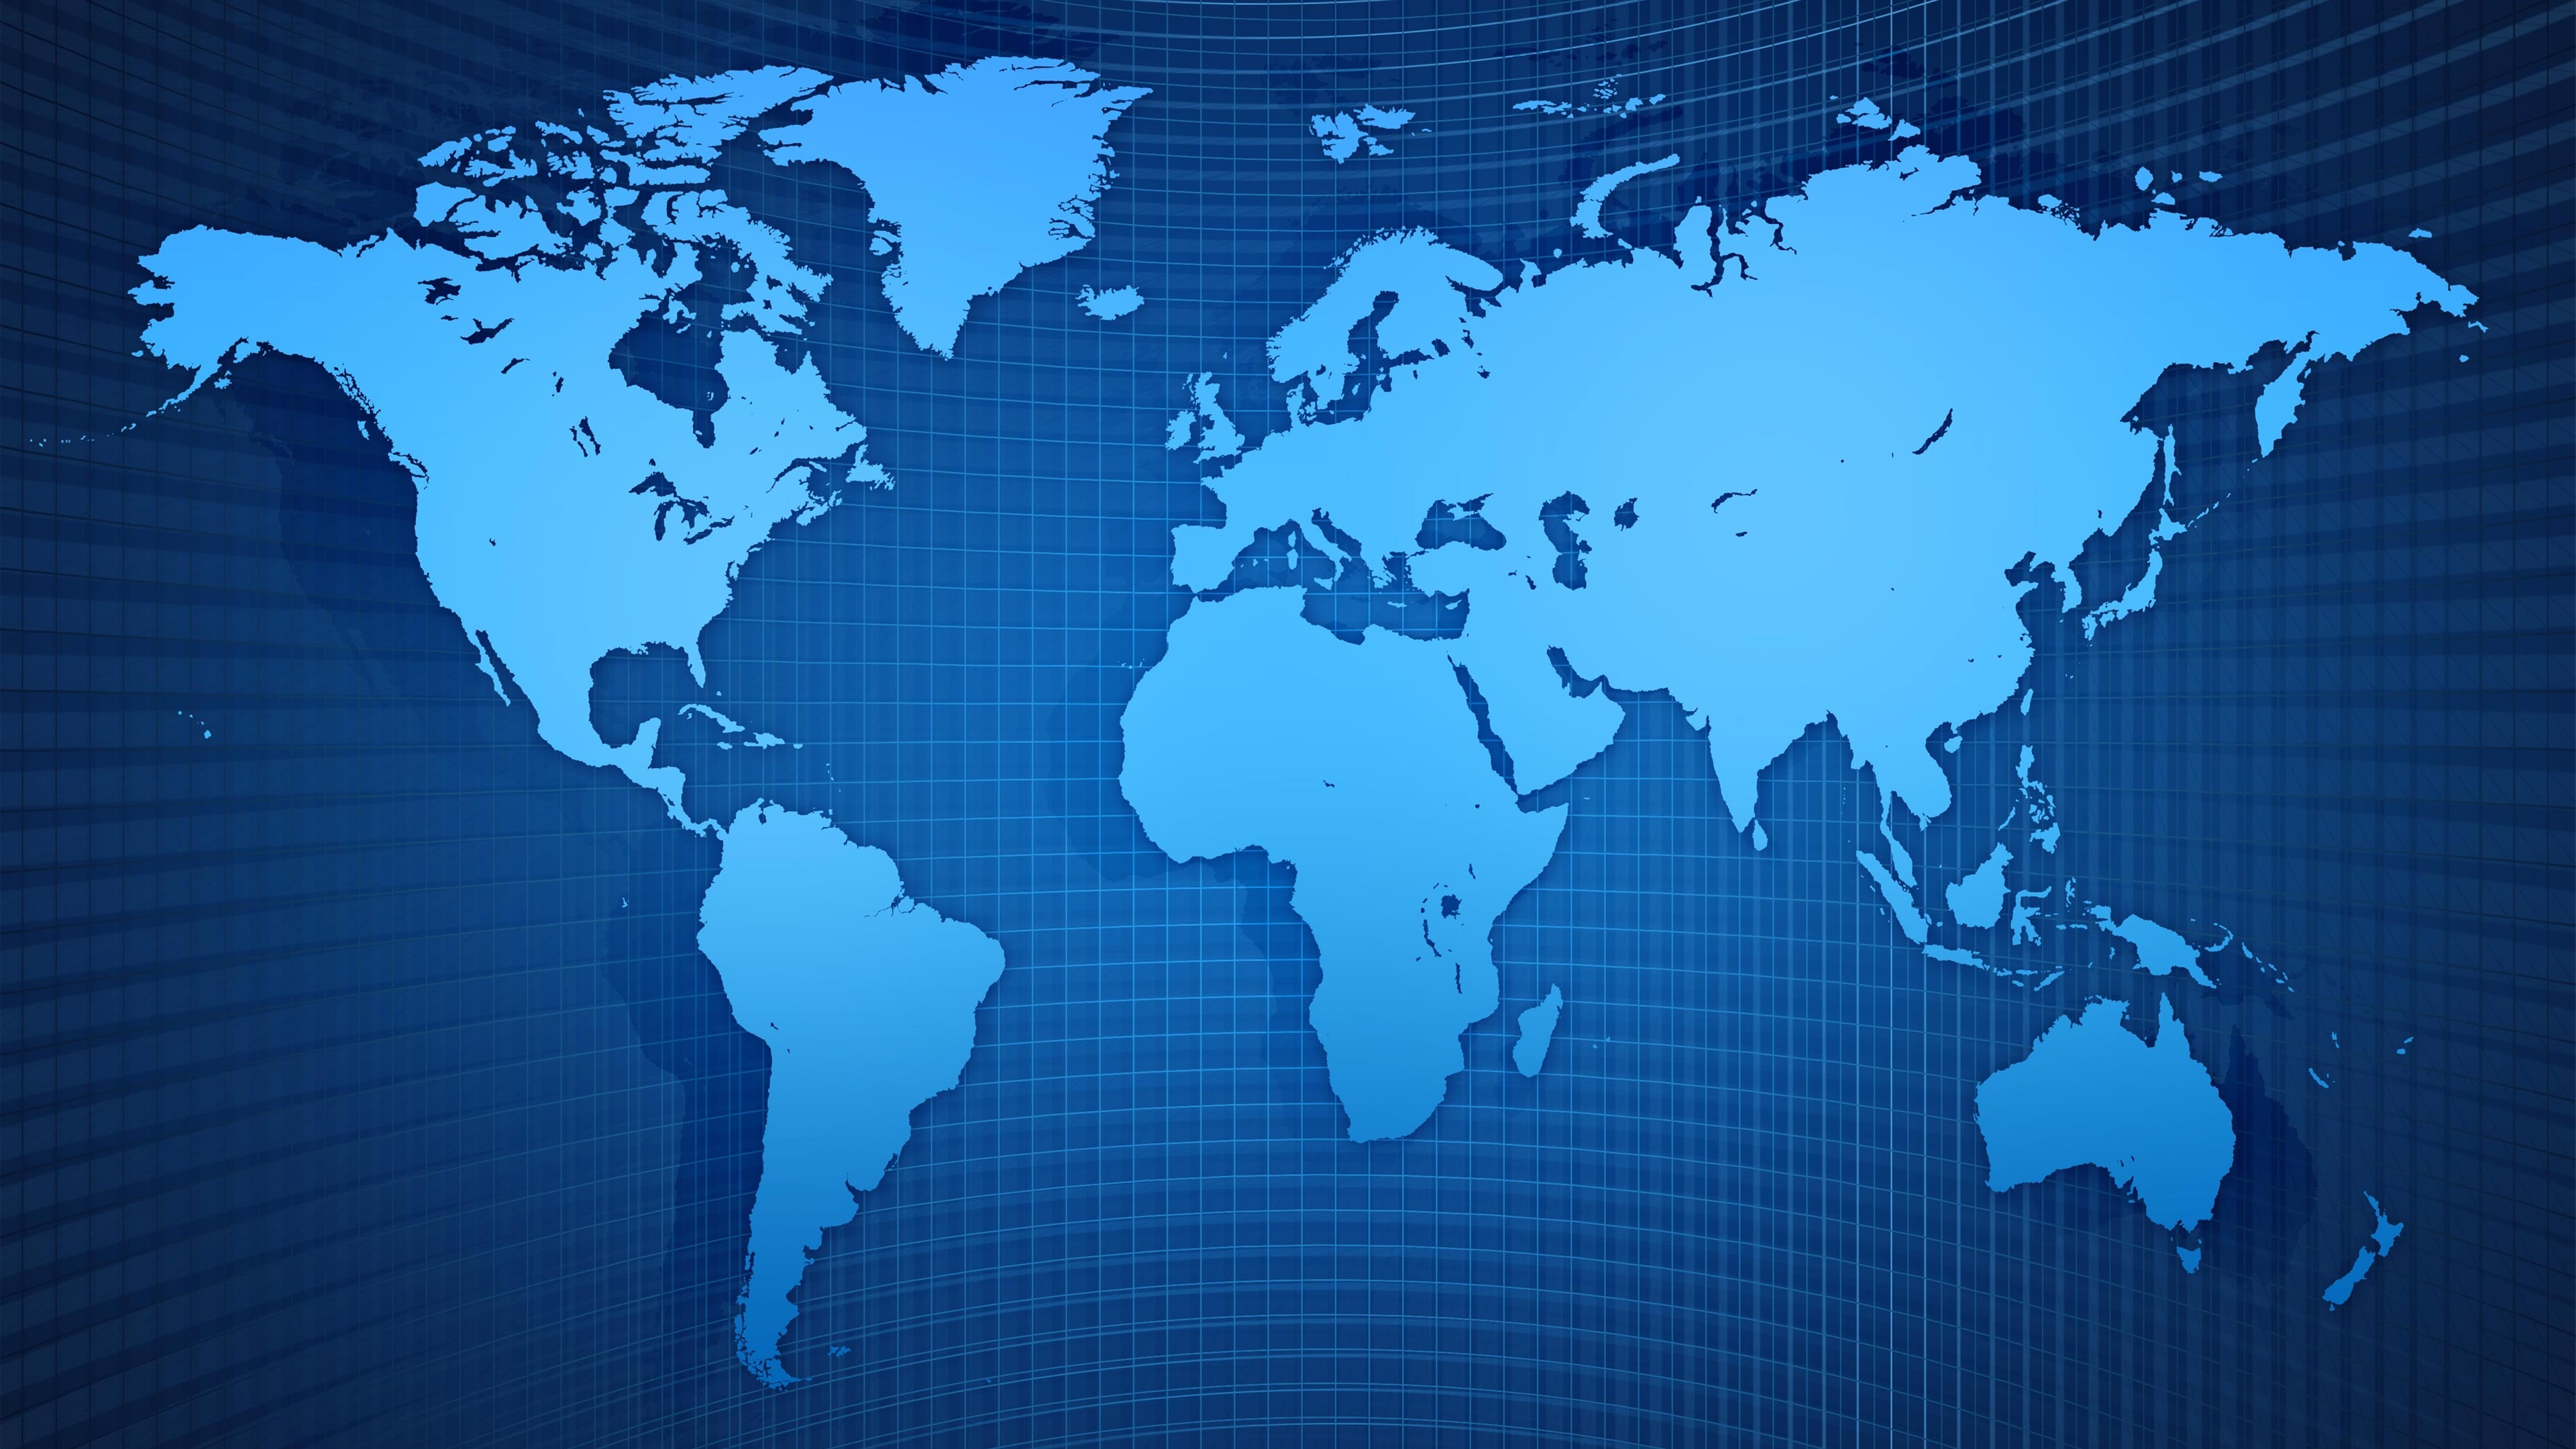 Wallpaper World Map Grid Blue Style 3840x2160 Uhd 4k Picture Image